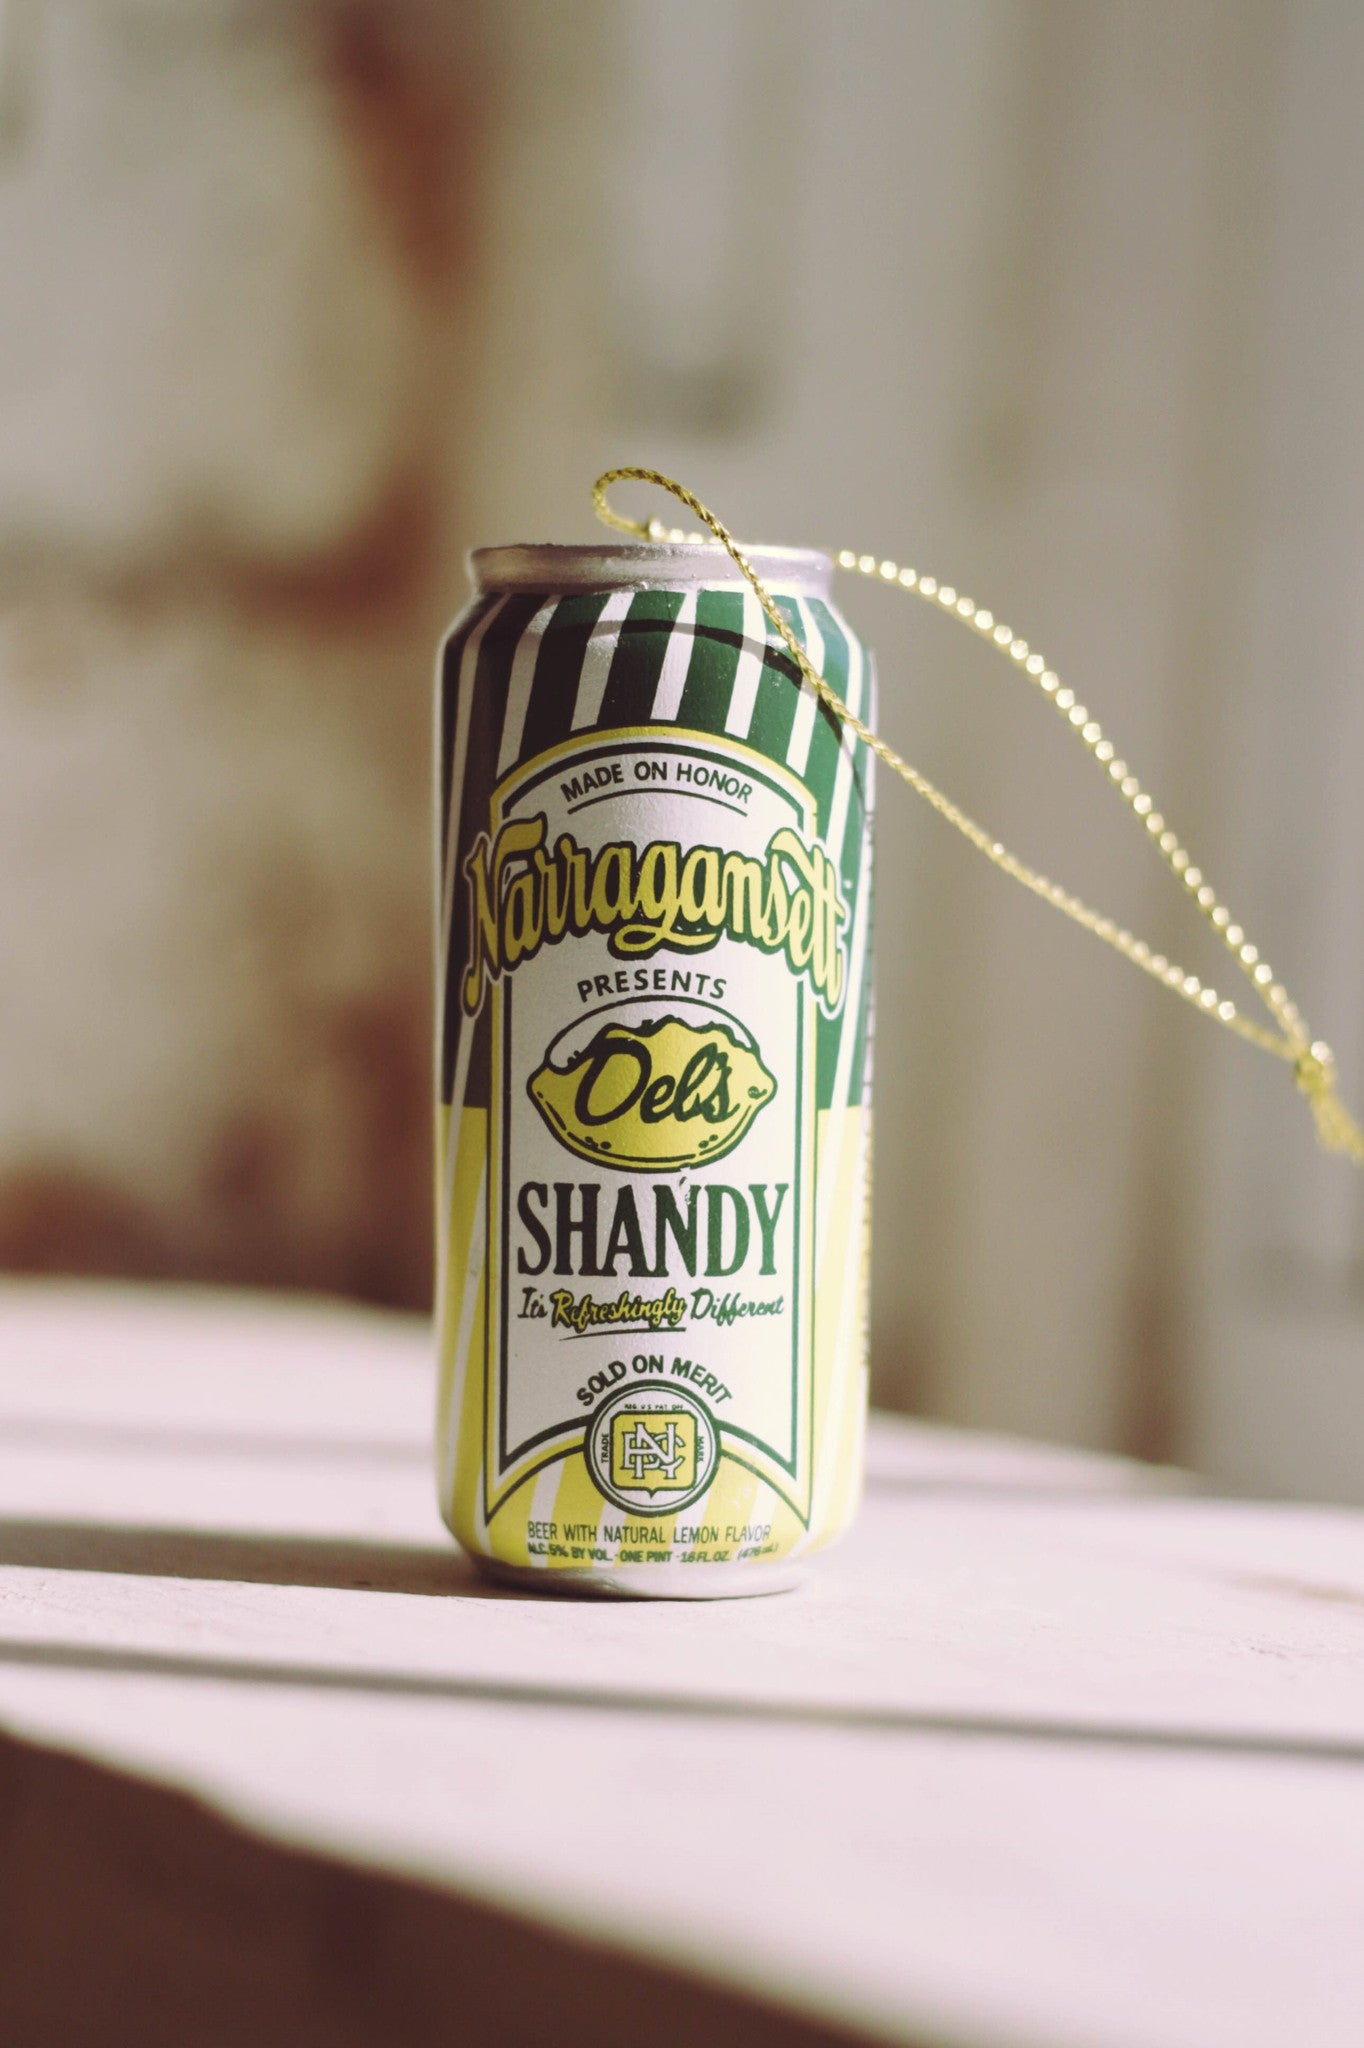 The Del's Shandy Ornament